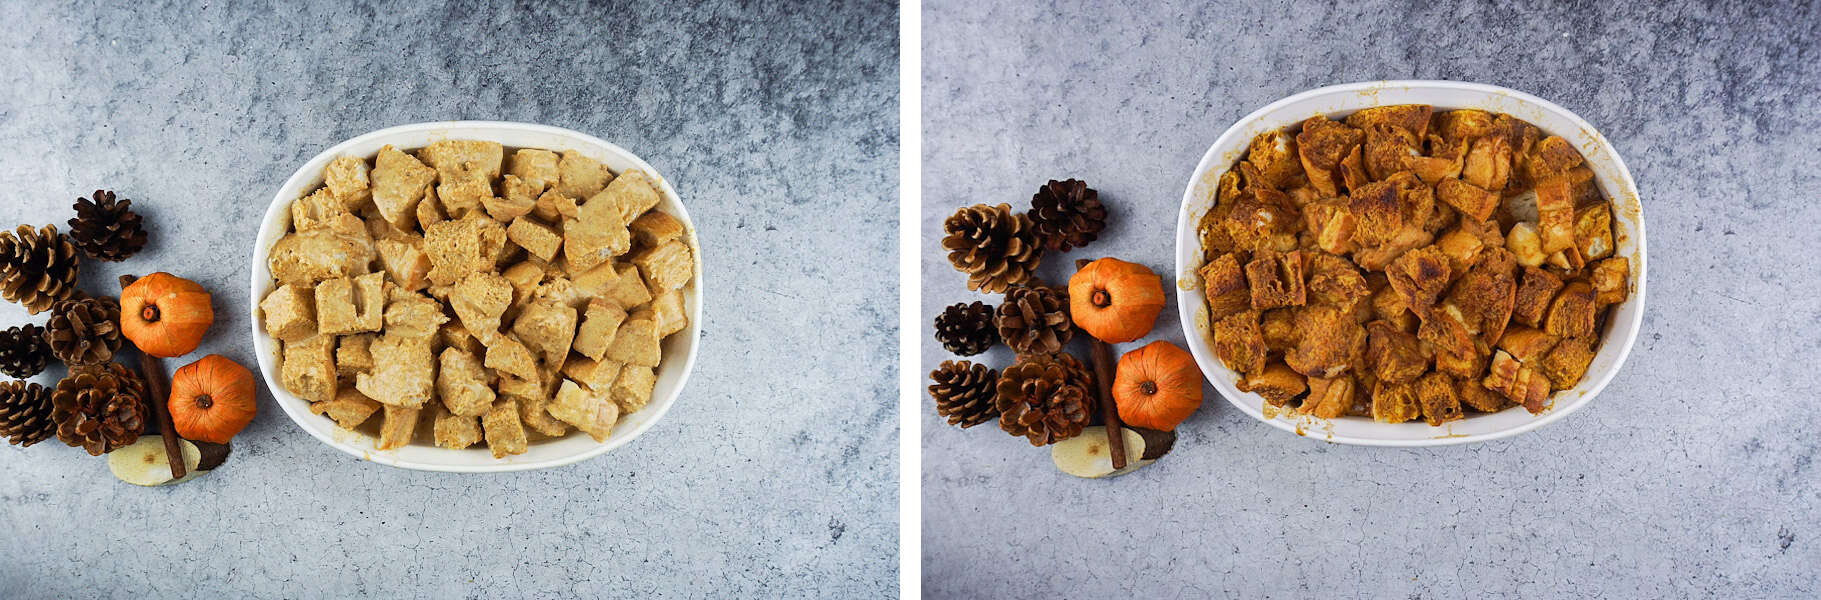 Pumpkin Bread Pudding Before and After baking